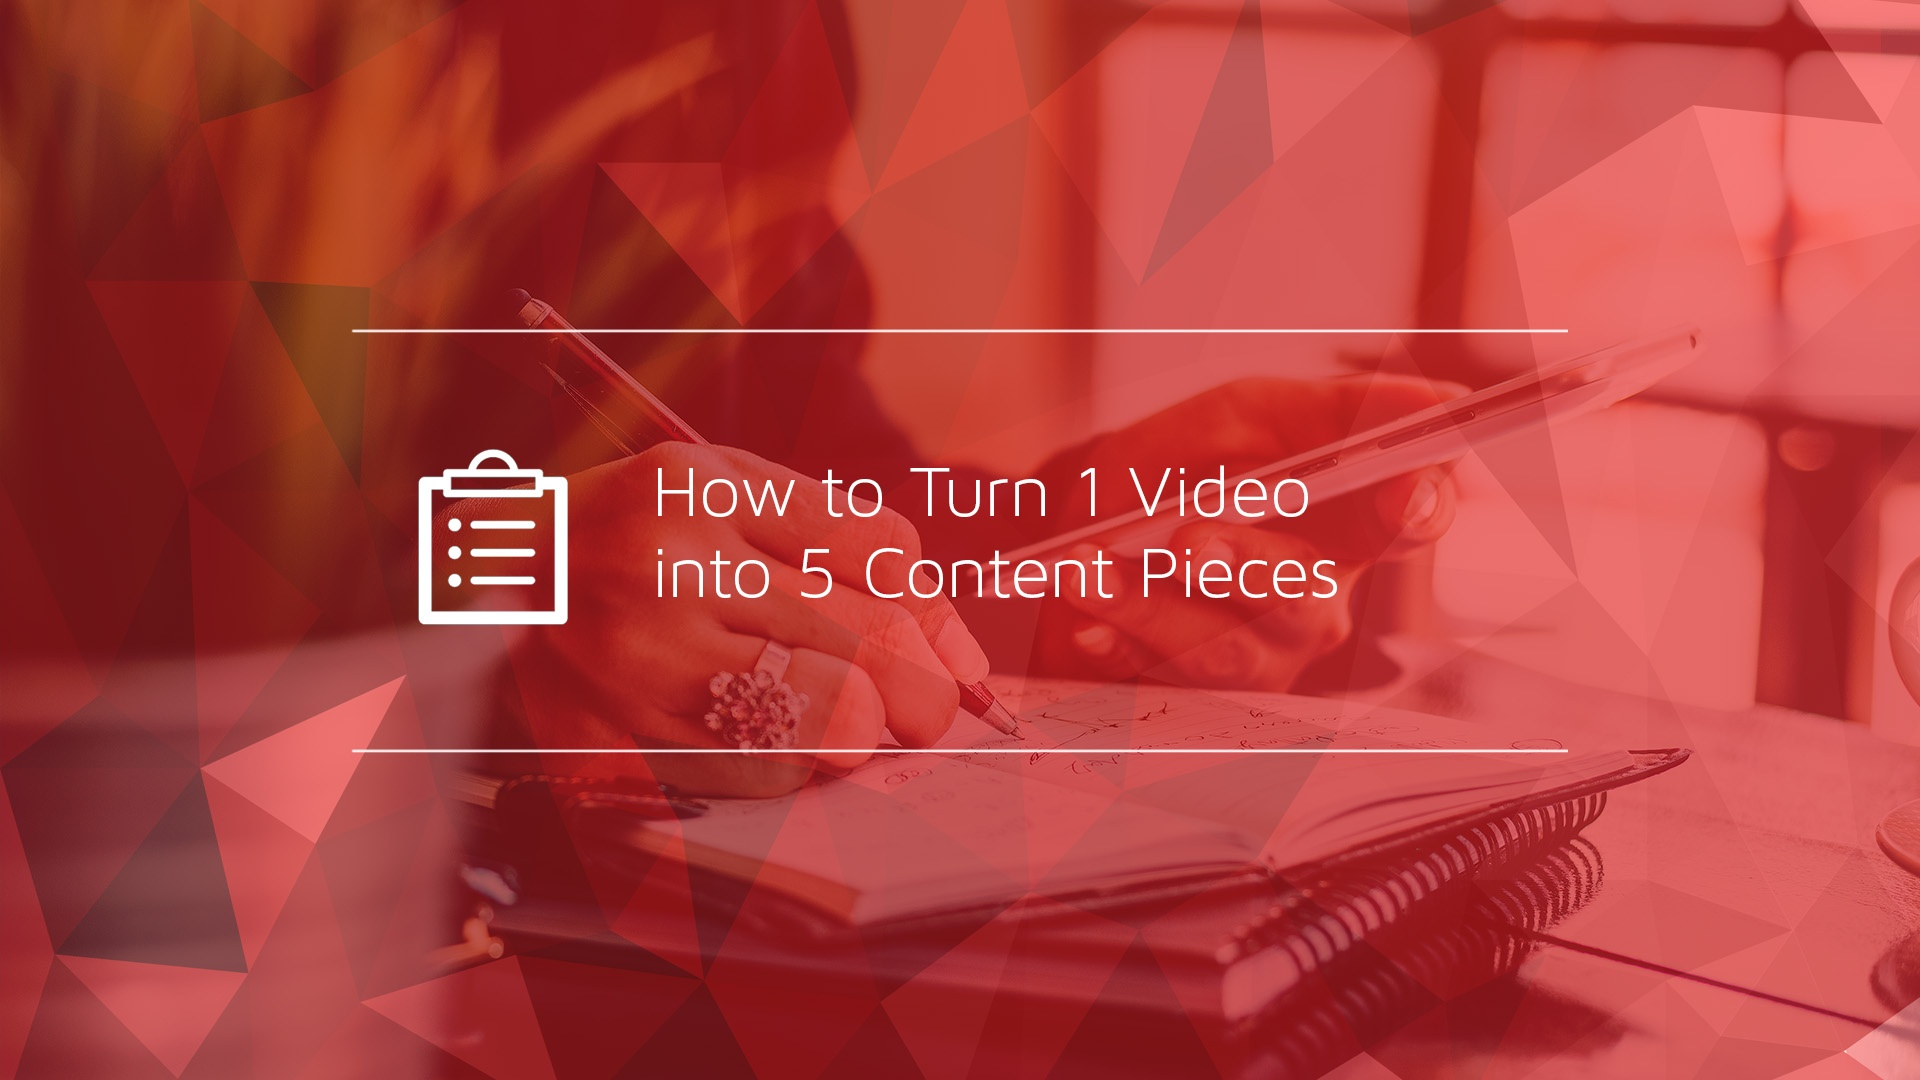 How to Turn 1 Video into 5 Content Pieces